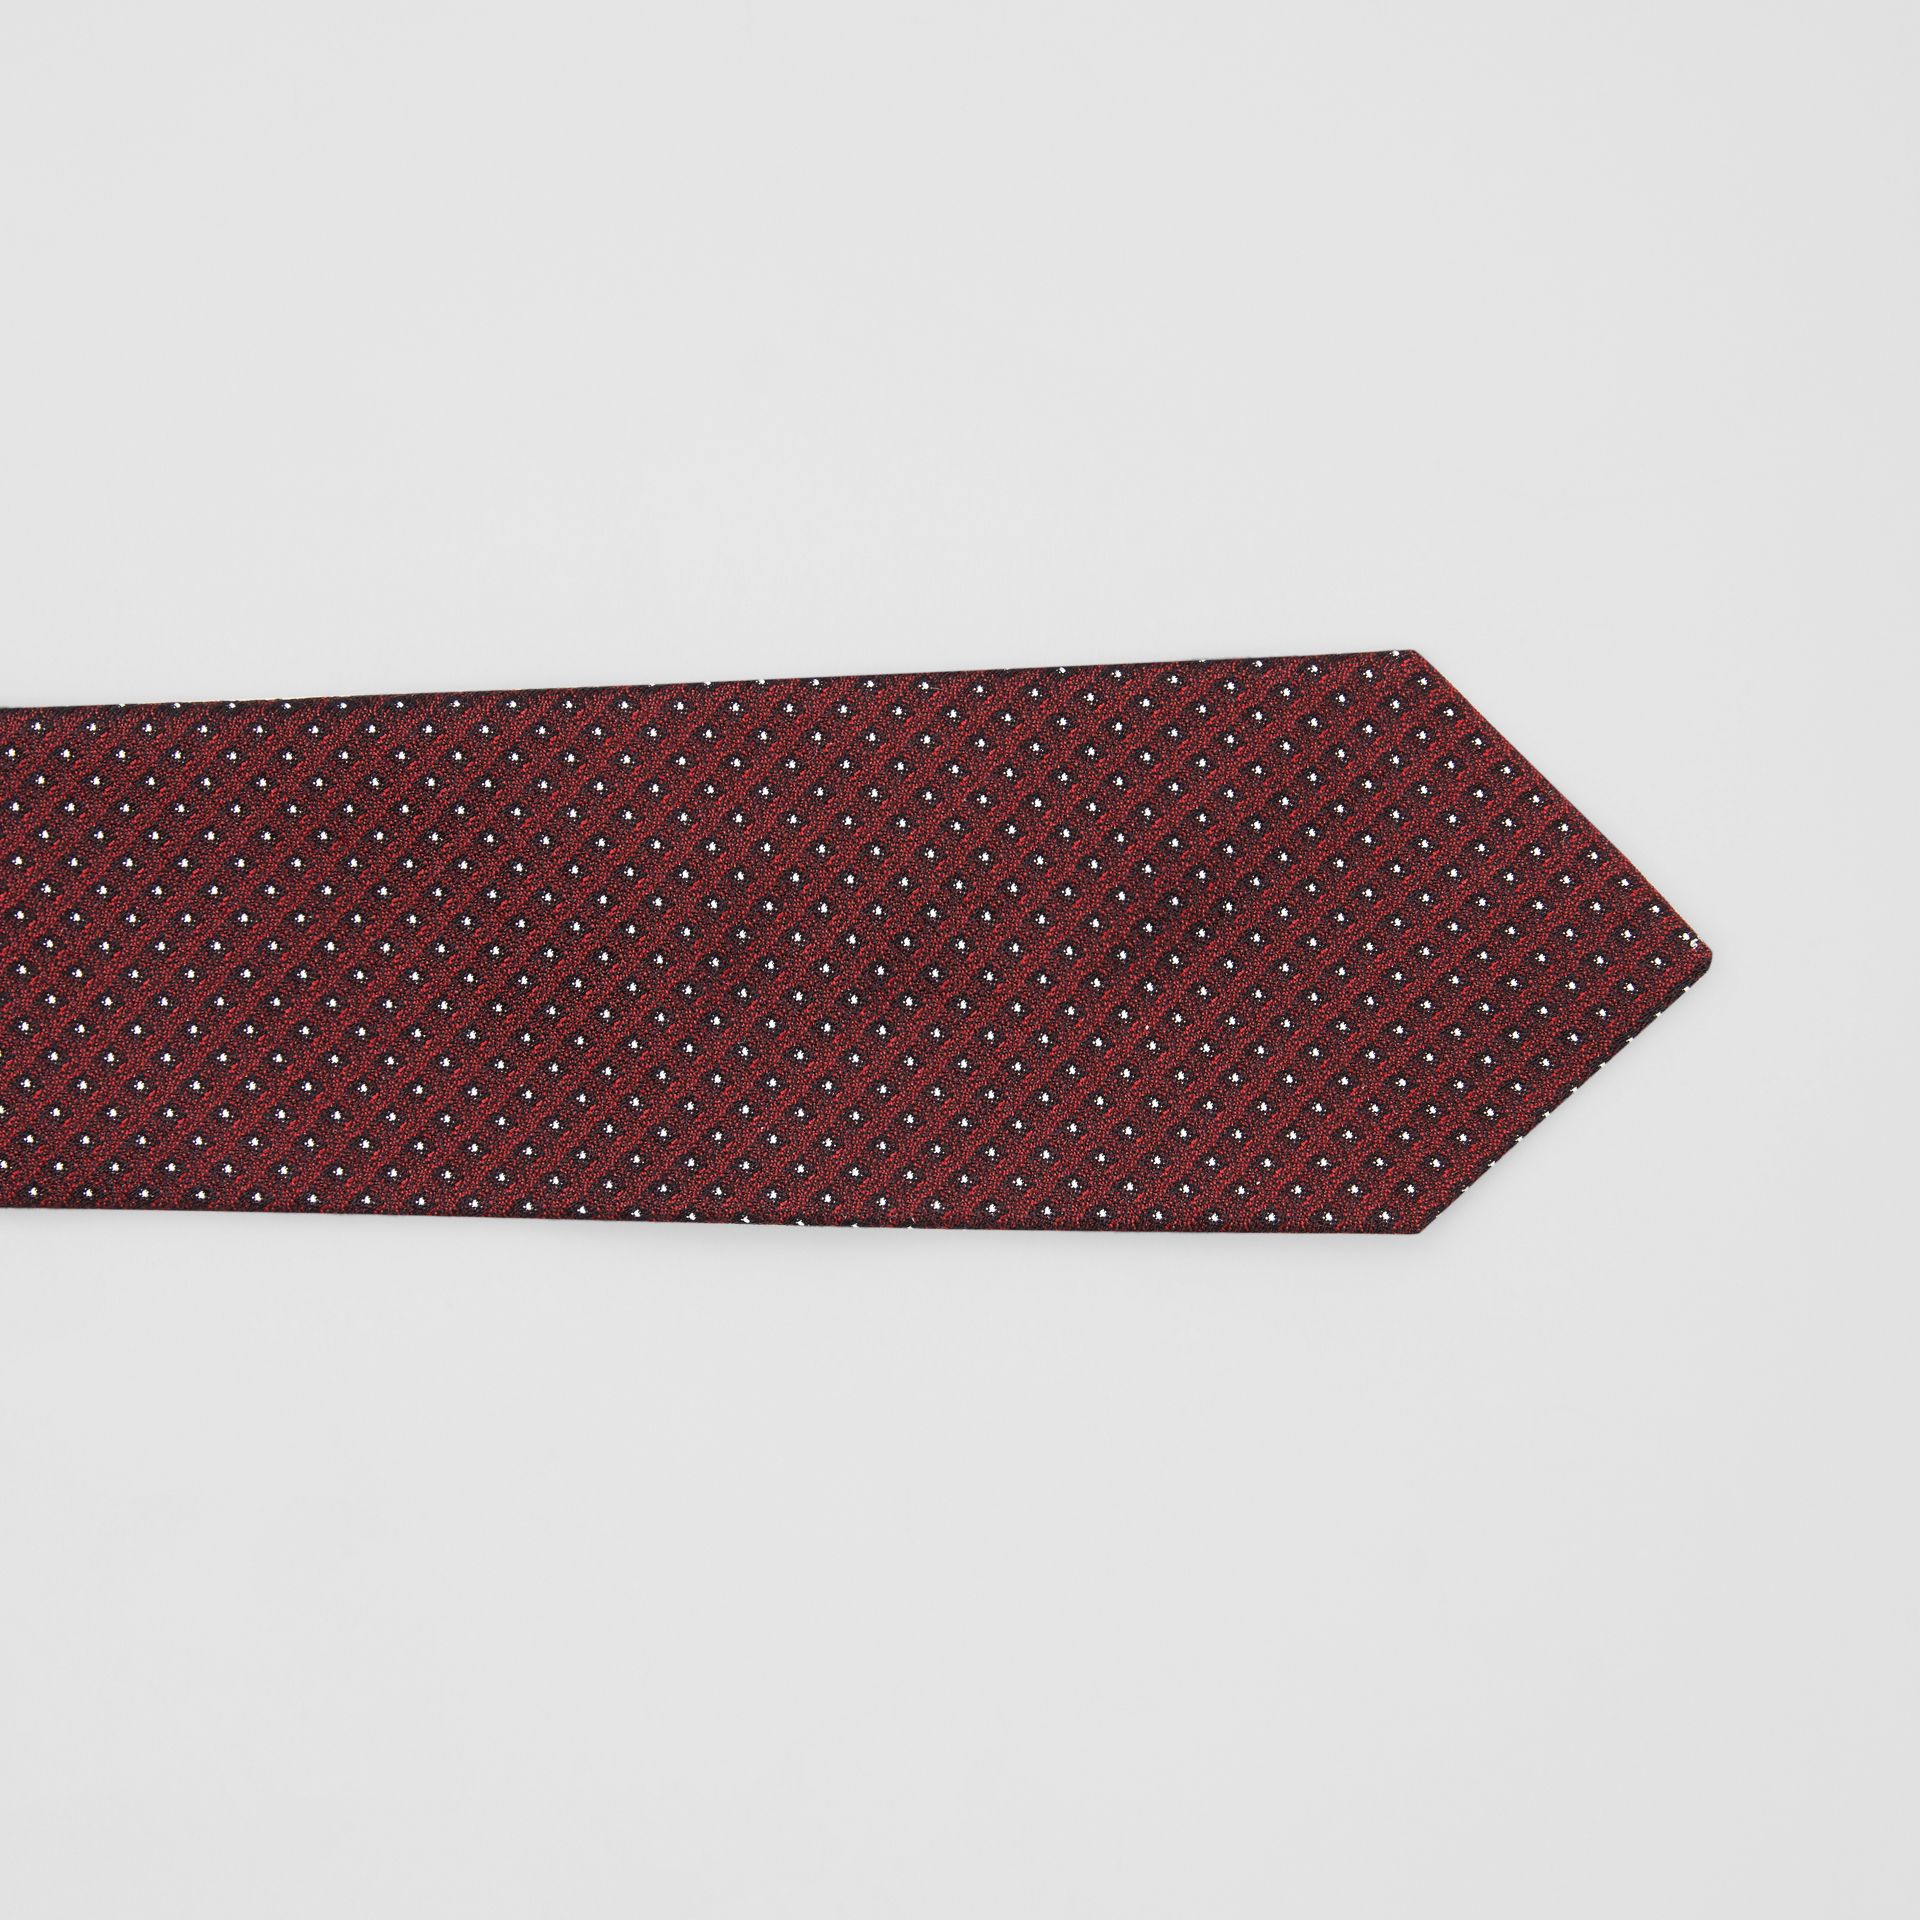 Classic Cut Micro Dot Silk Jacquard Tie in Oxblood - Men | Burberry - gallery image 1